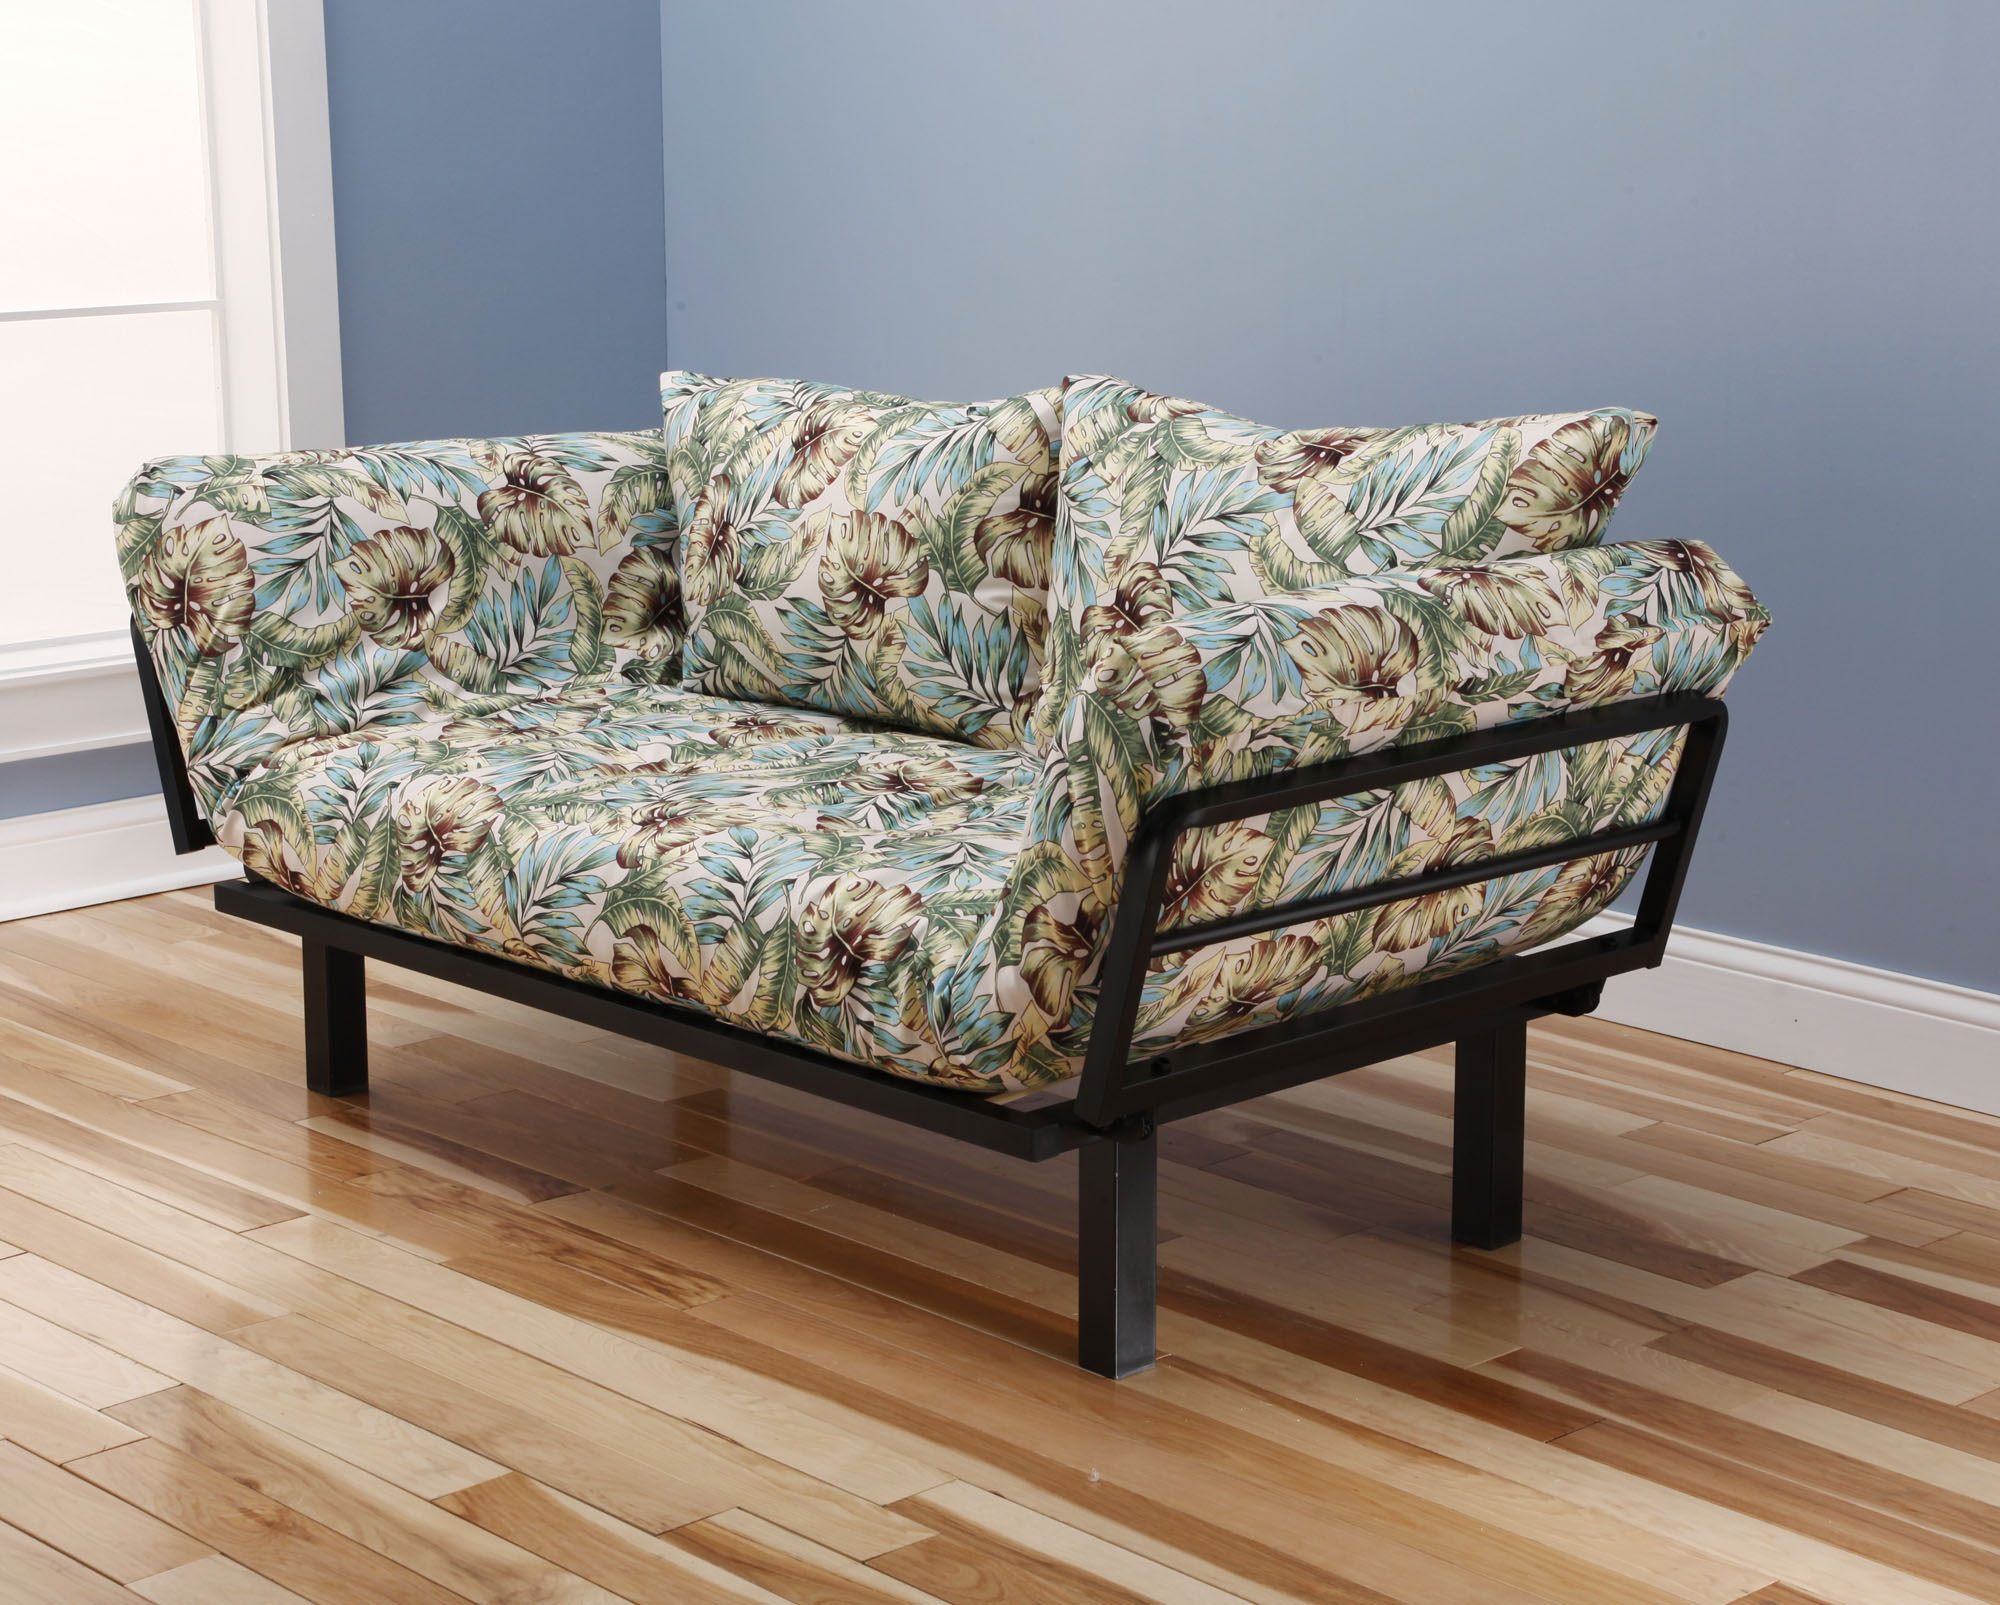 Spacely Futon Daybed Lounger With Mattress Panama Beach By